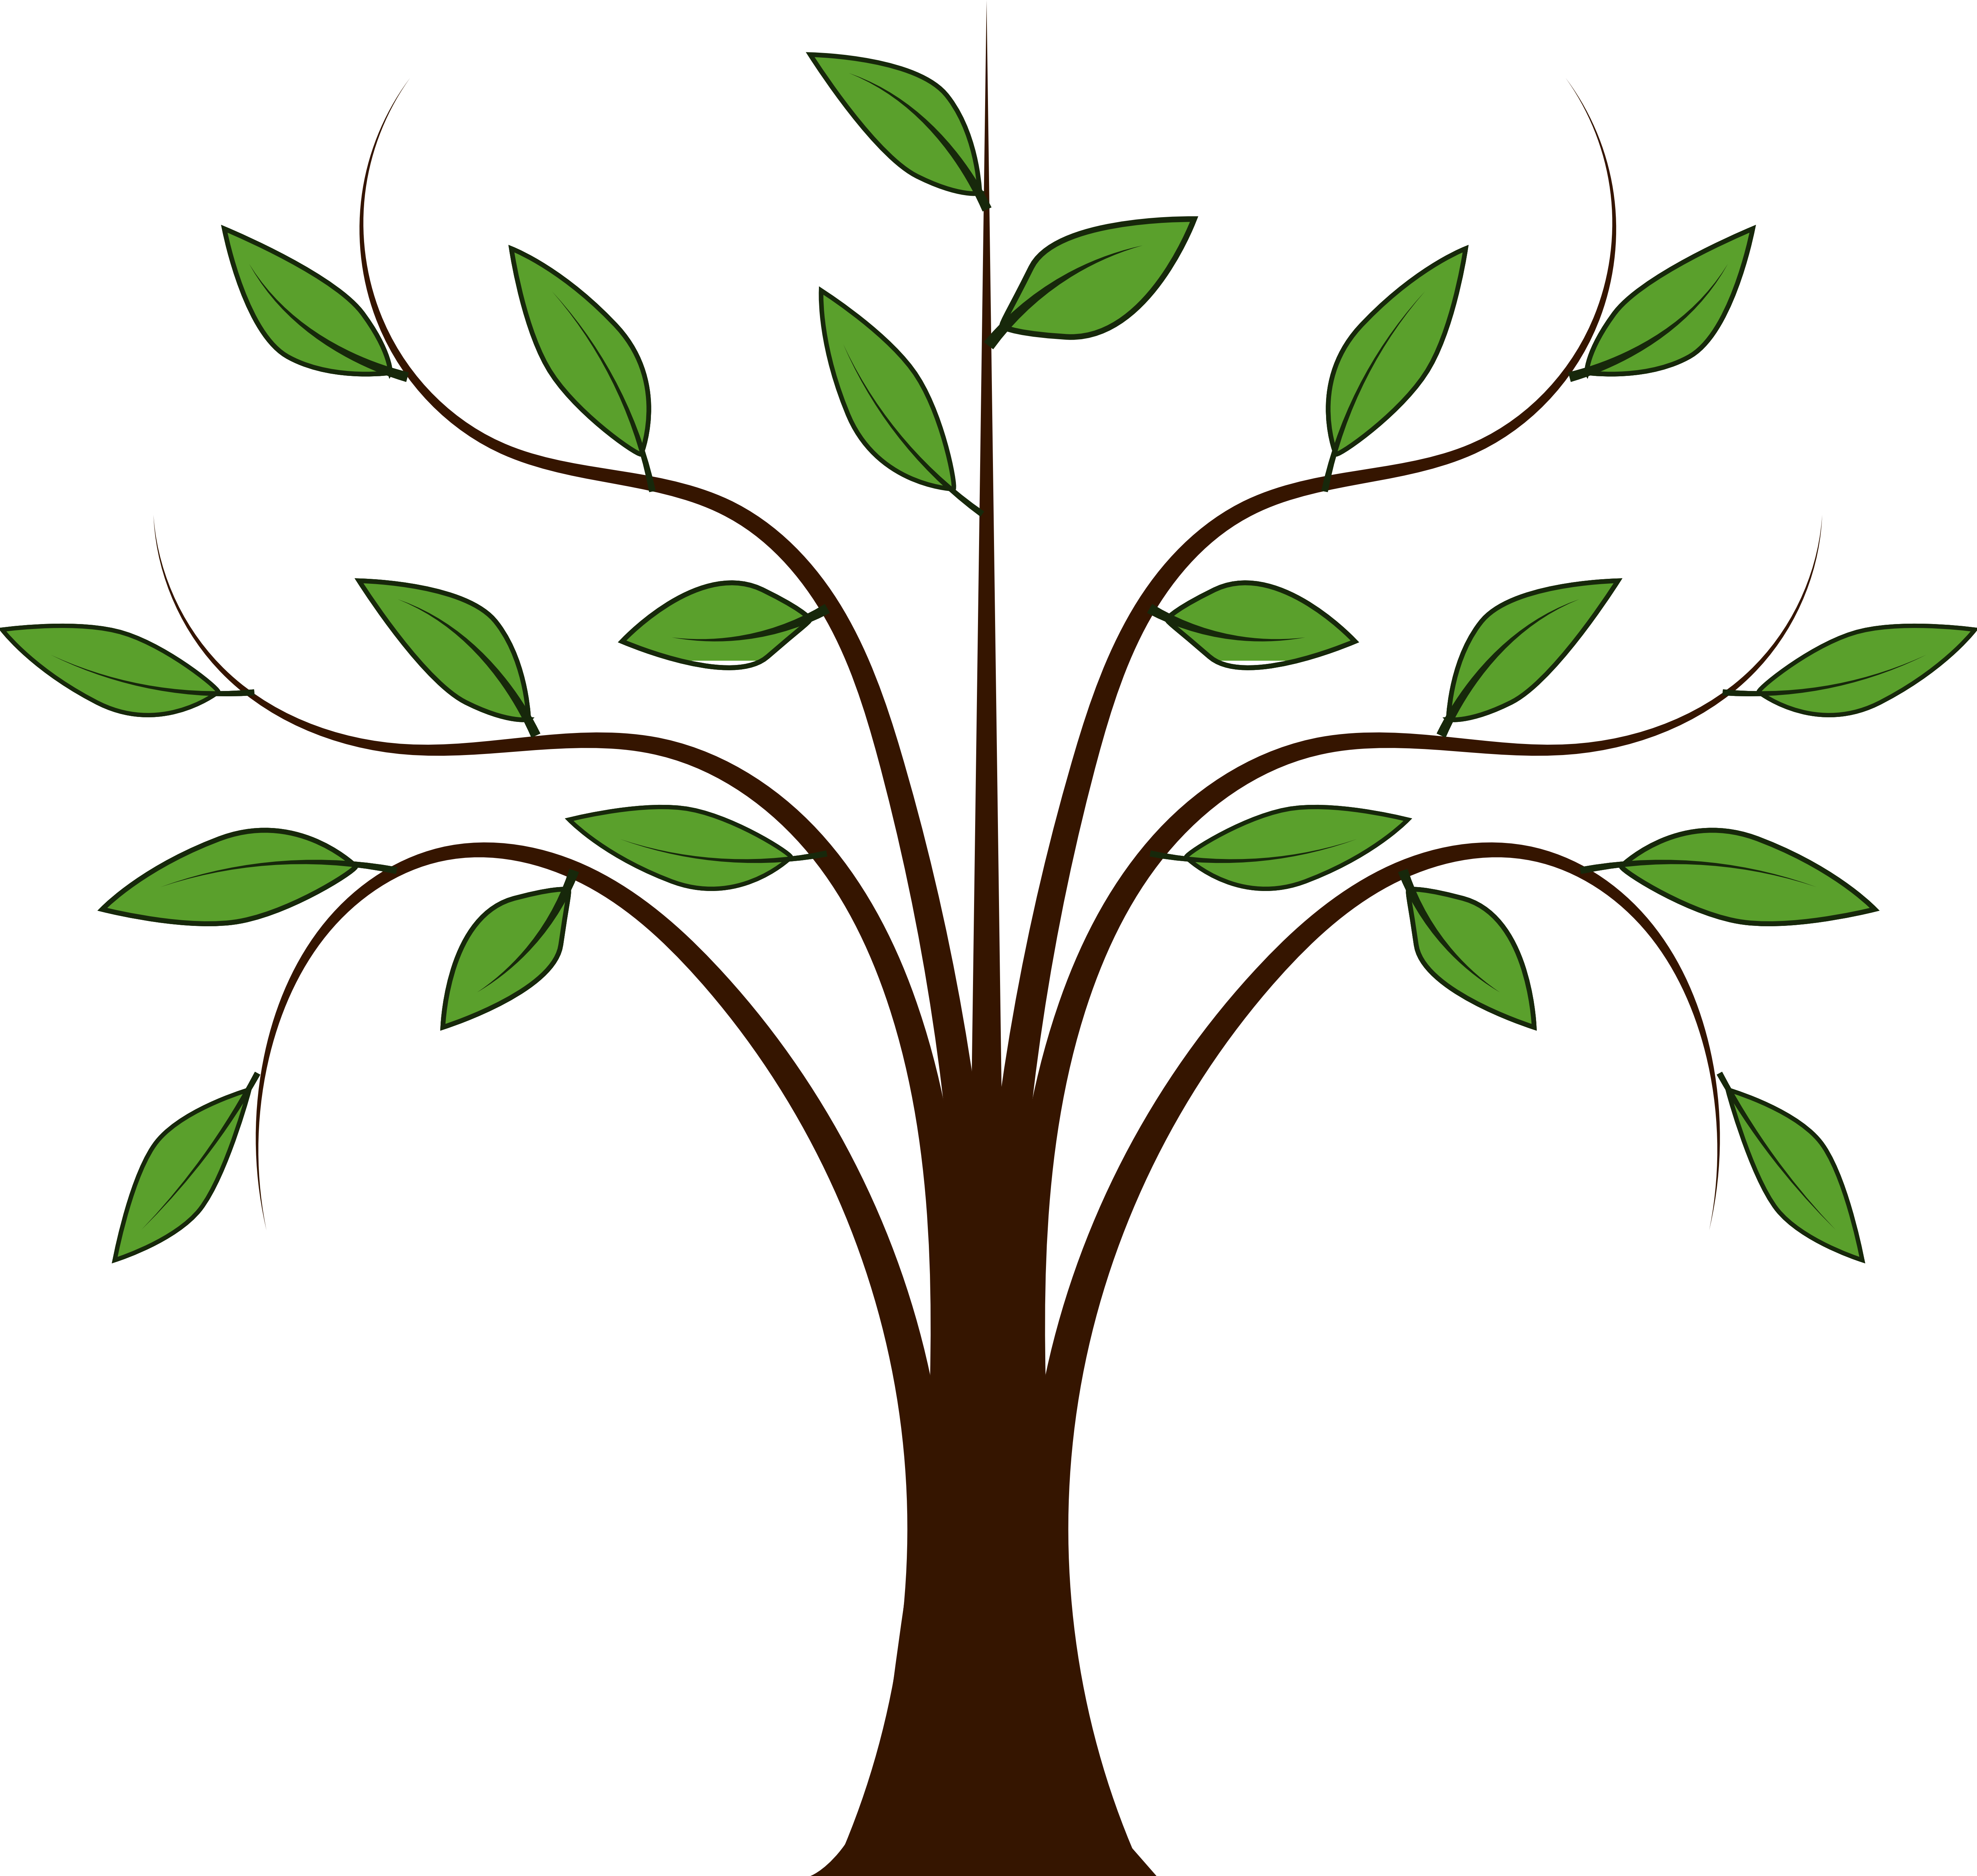 Family tree branches clipart.